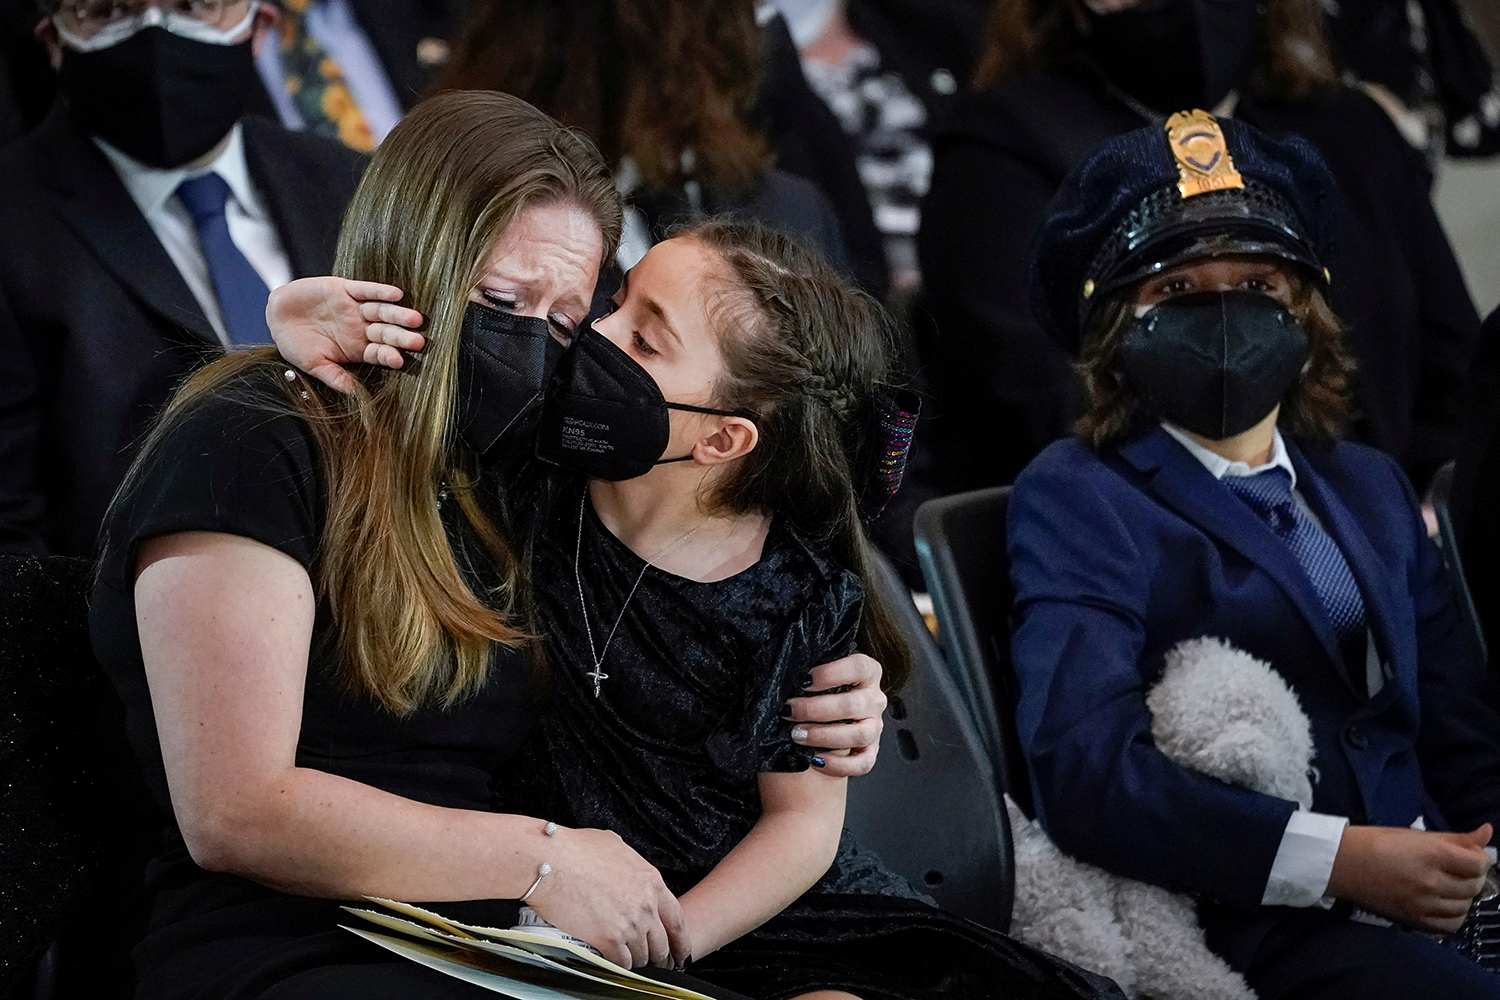 The children of slain U.S. Capitol Police Officer William Evans sit with their mother during his memorial service at the Rotunda of the U.S. Capitol in Washington on April 13. Drew Angerer/Reuters